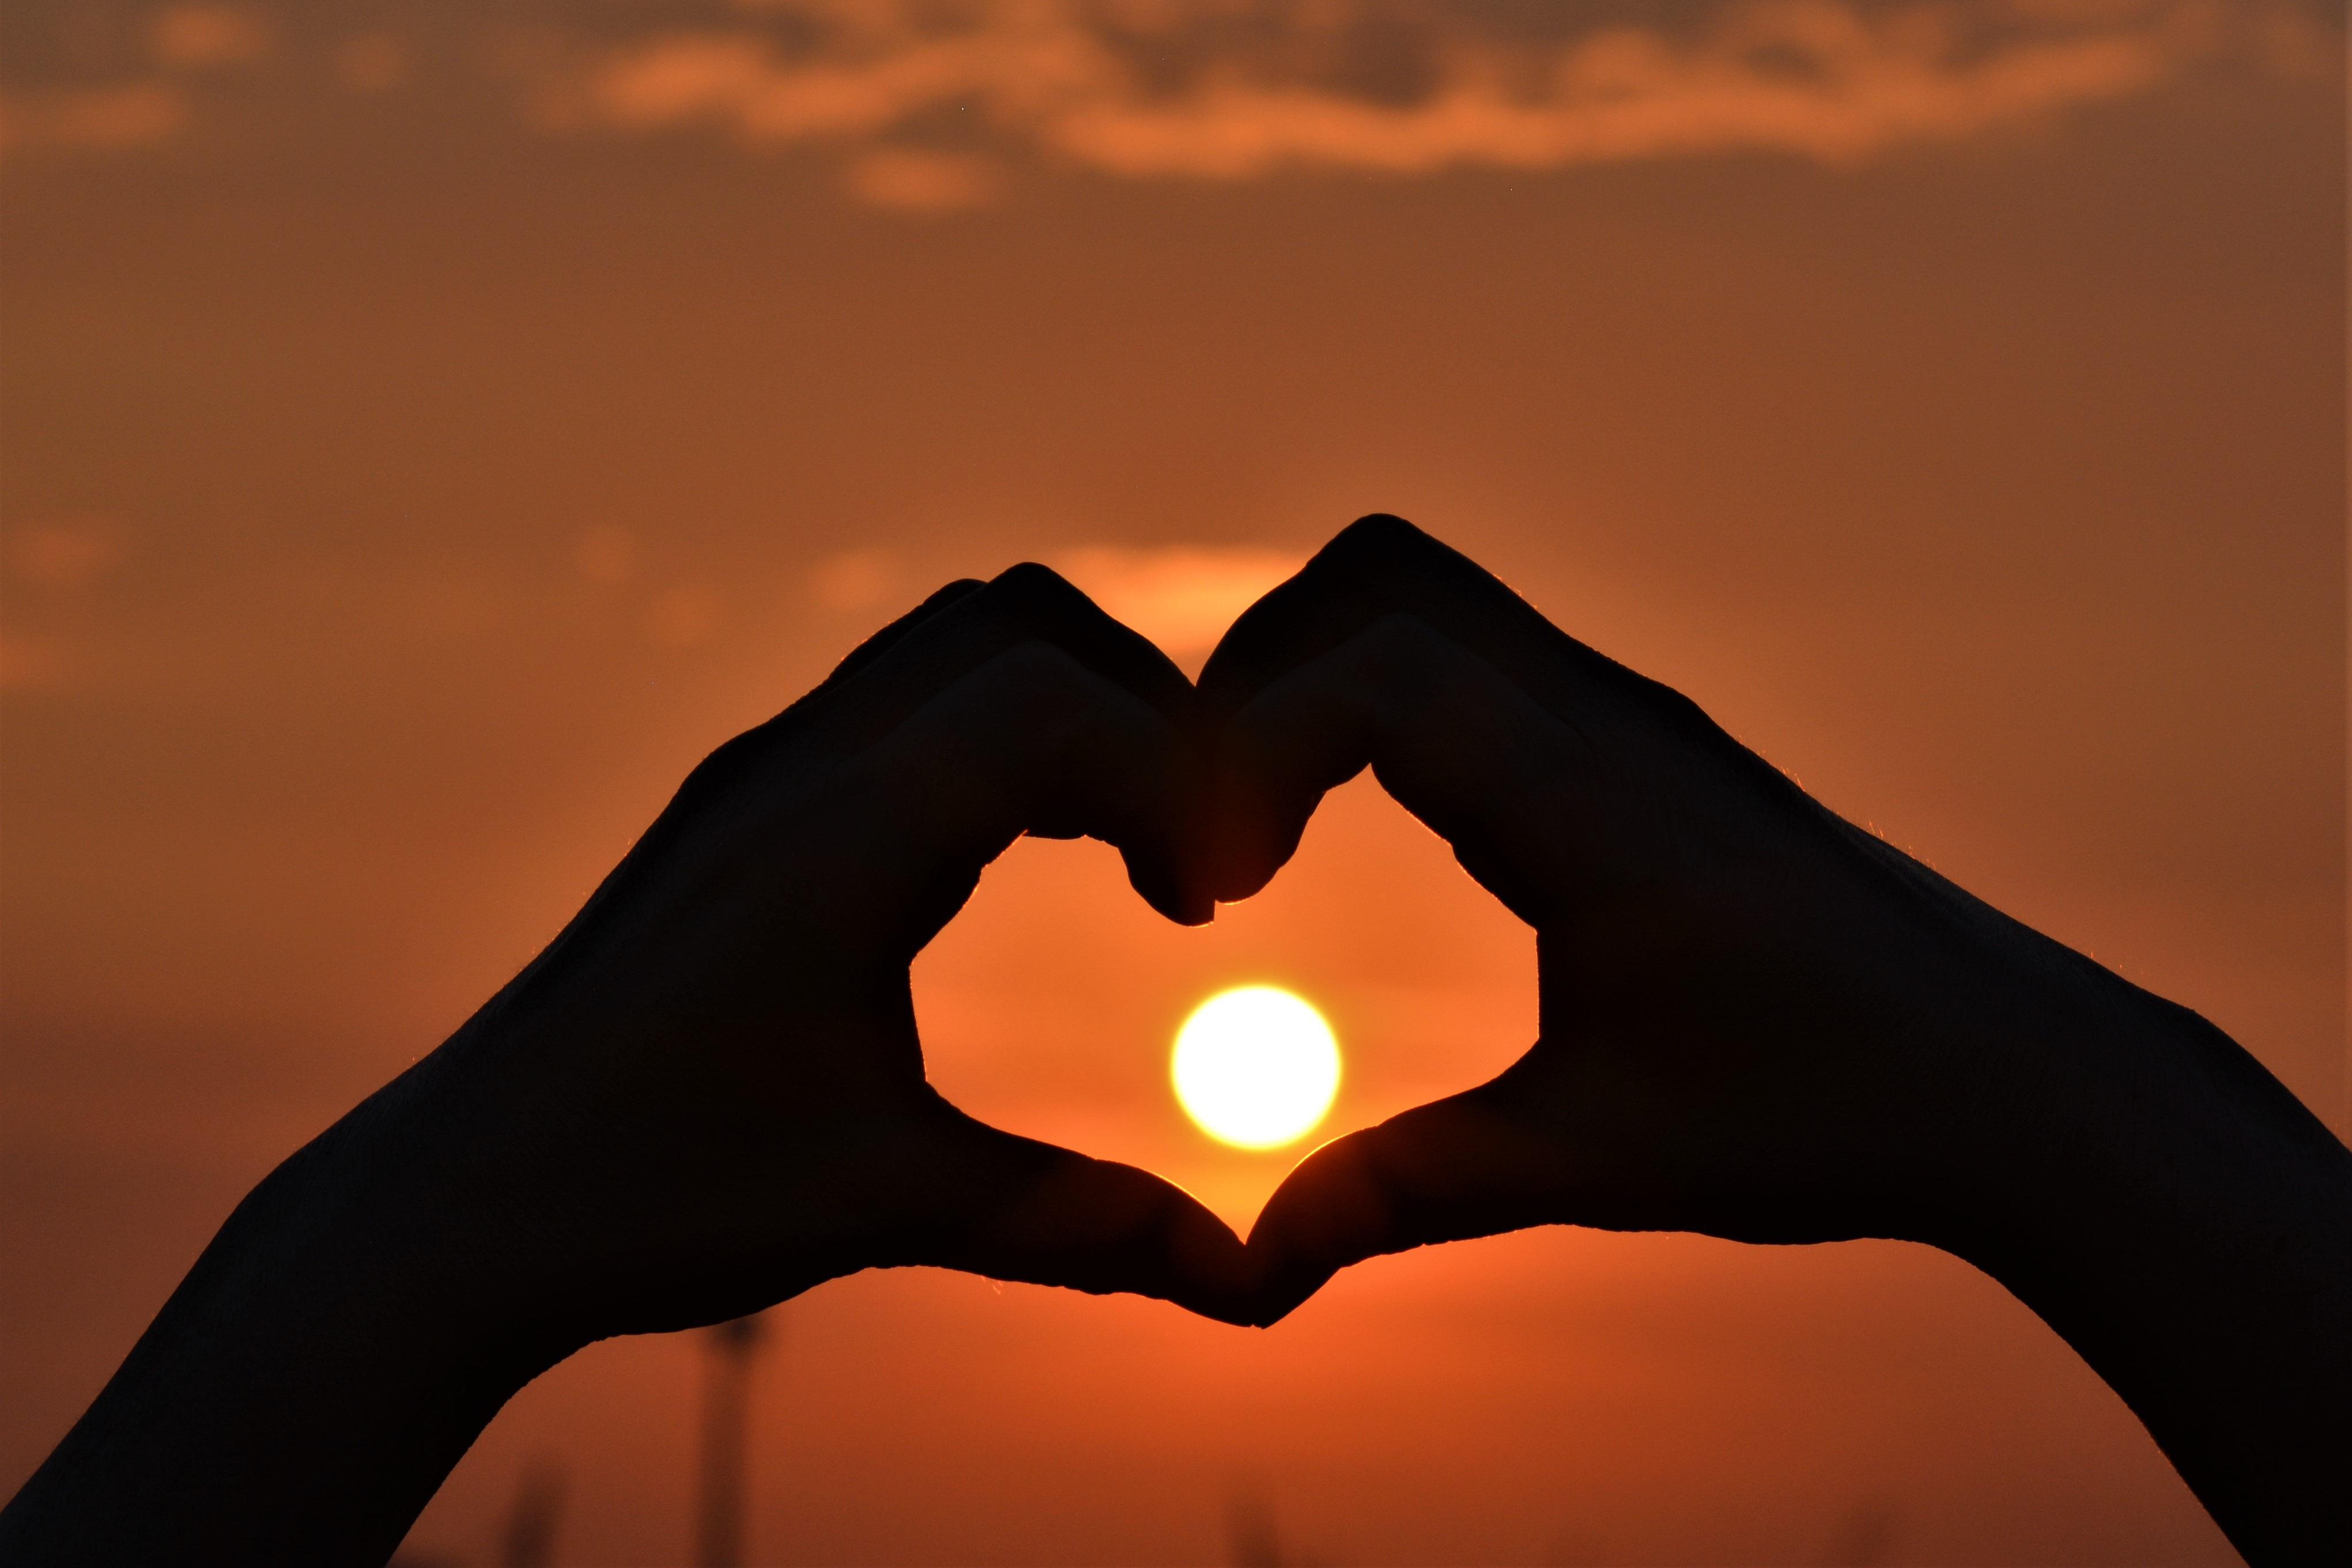 90043 download wallpaper Hands, Heart, Sunset, Love, Sun screensavers and pictures for free